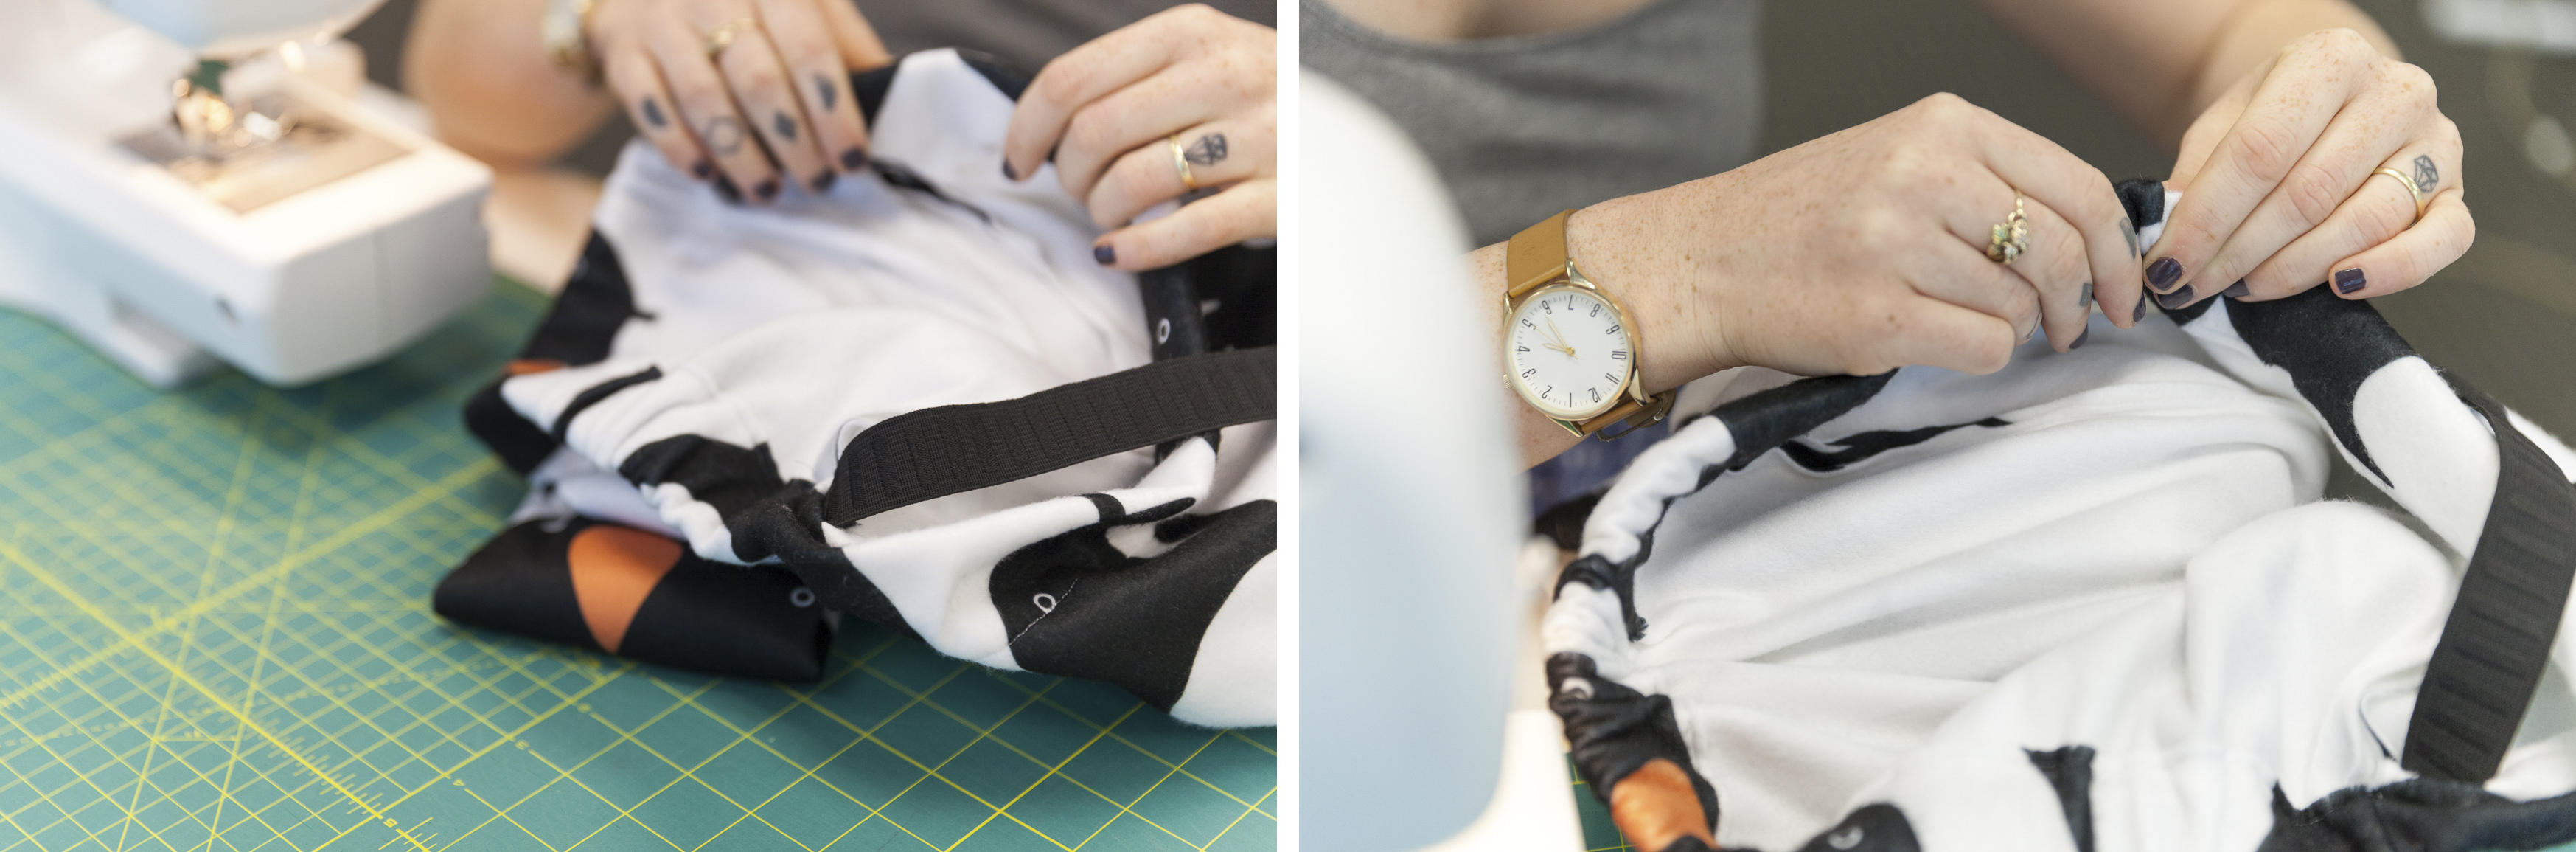 Feeding elastic into the waistband | Spoonflower Blog